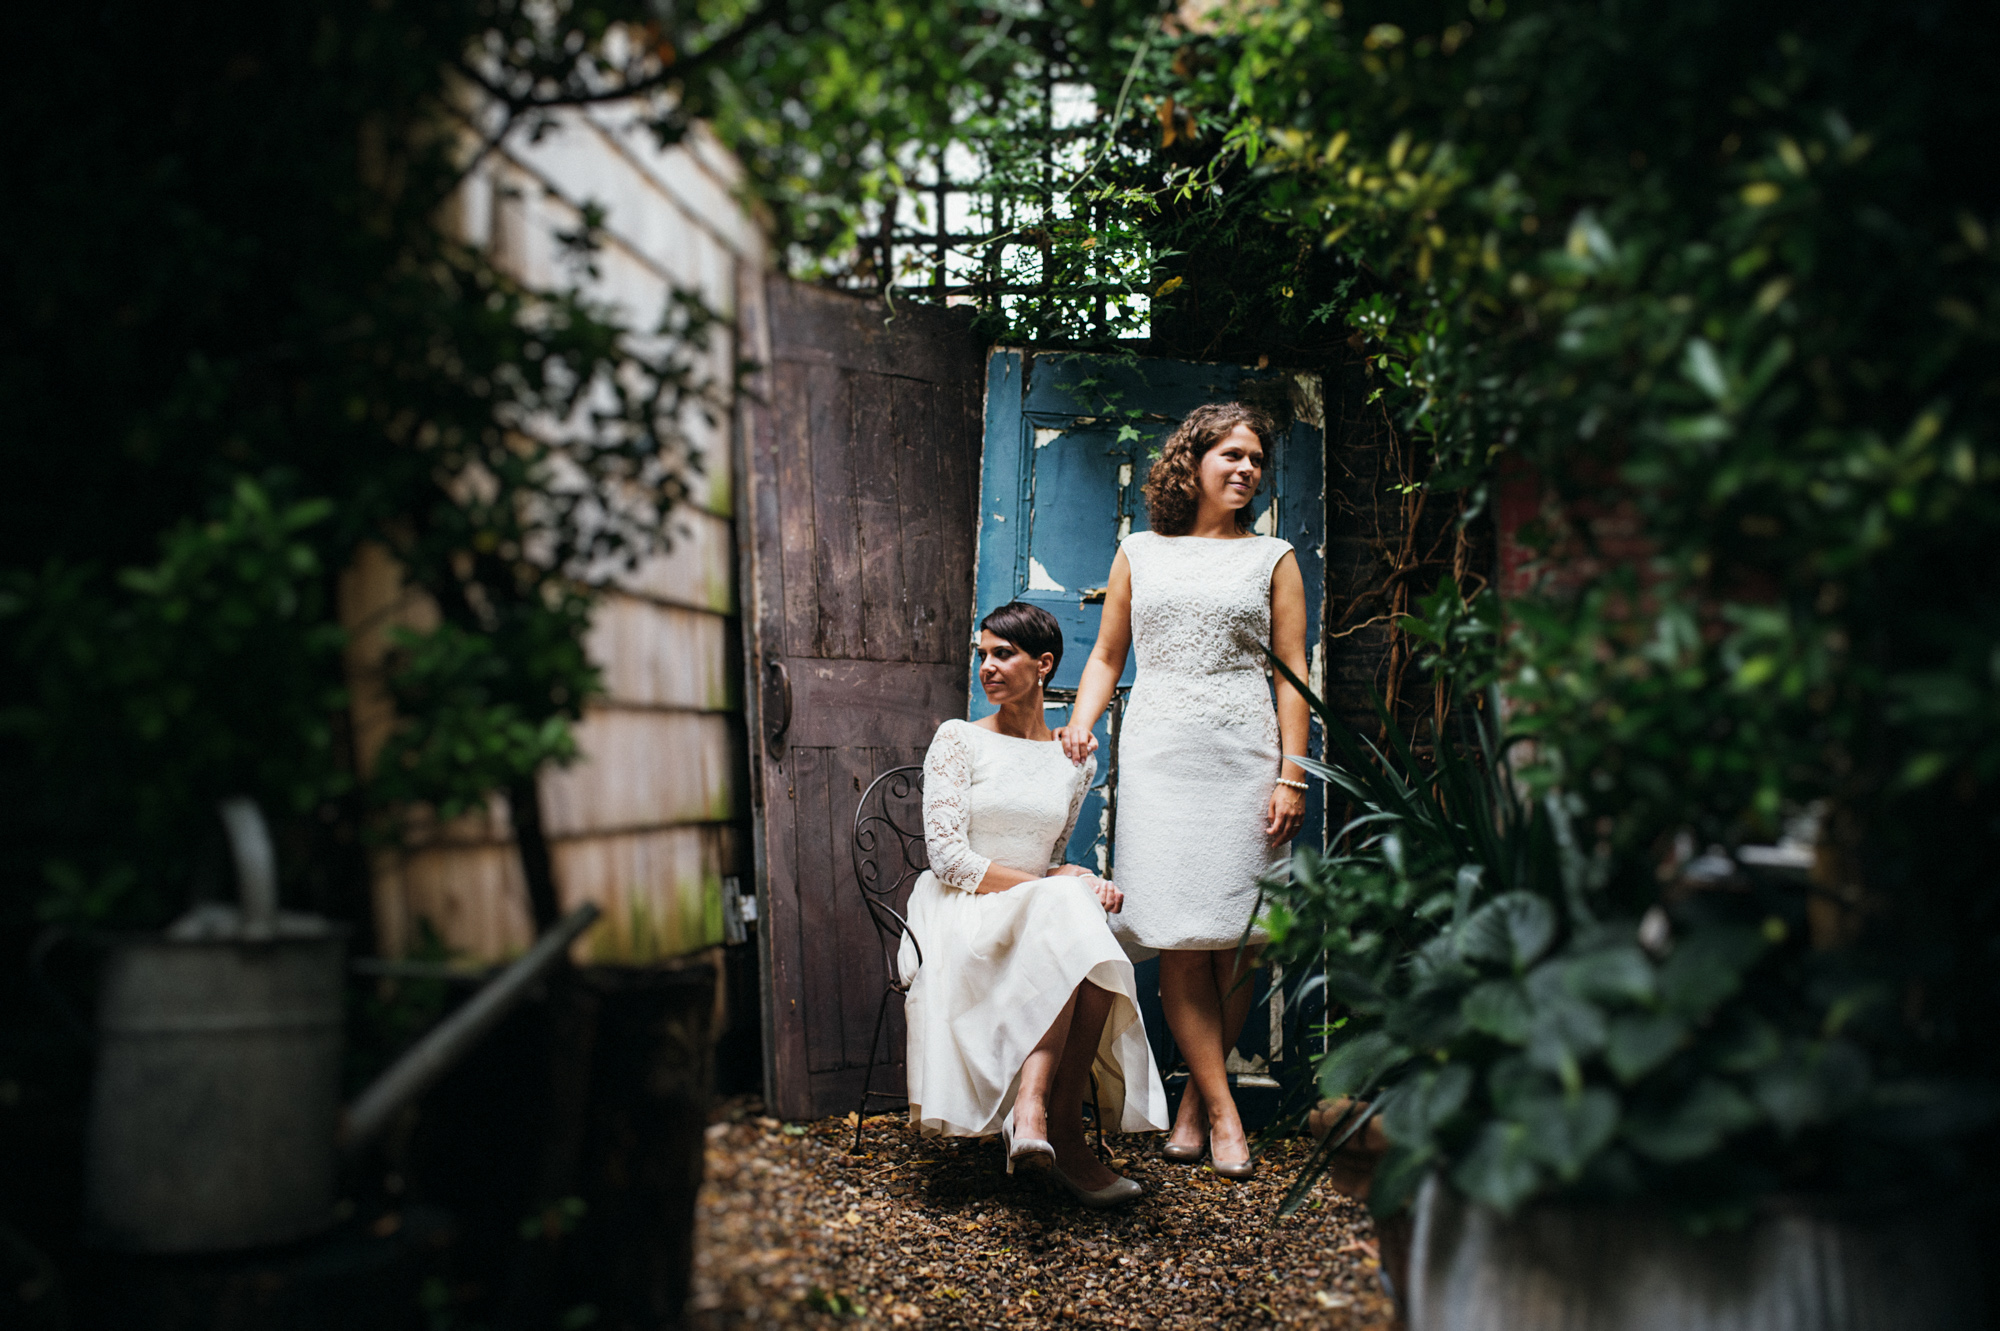 Lesbian brides in the garden at the Roost pub Dalston - same sex wedding photography The Roost Dalston London wedding photographer © Babb Photo